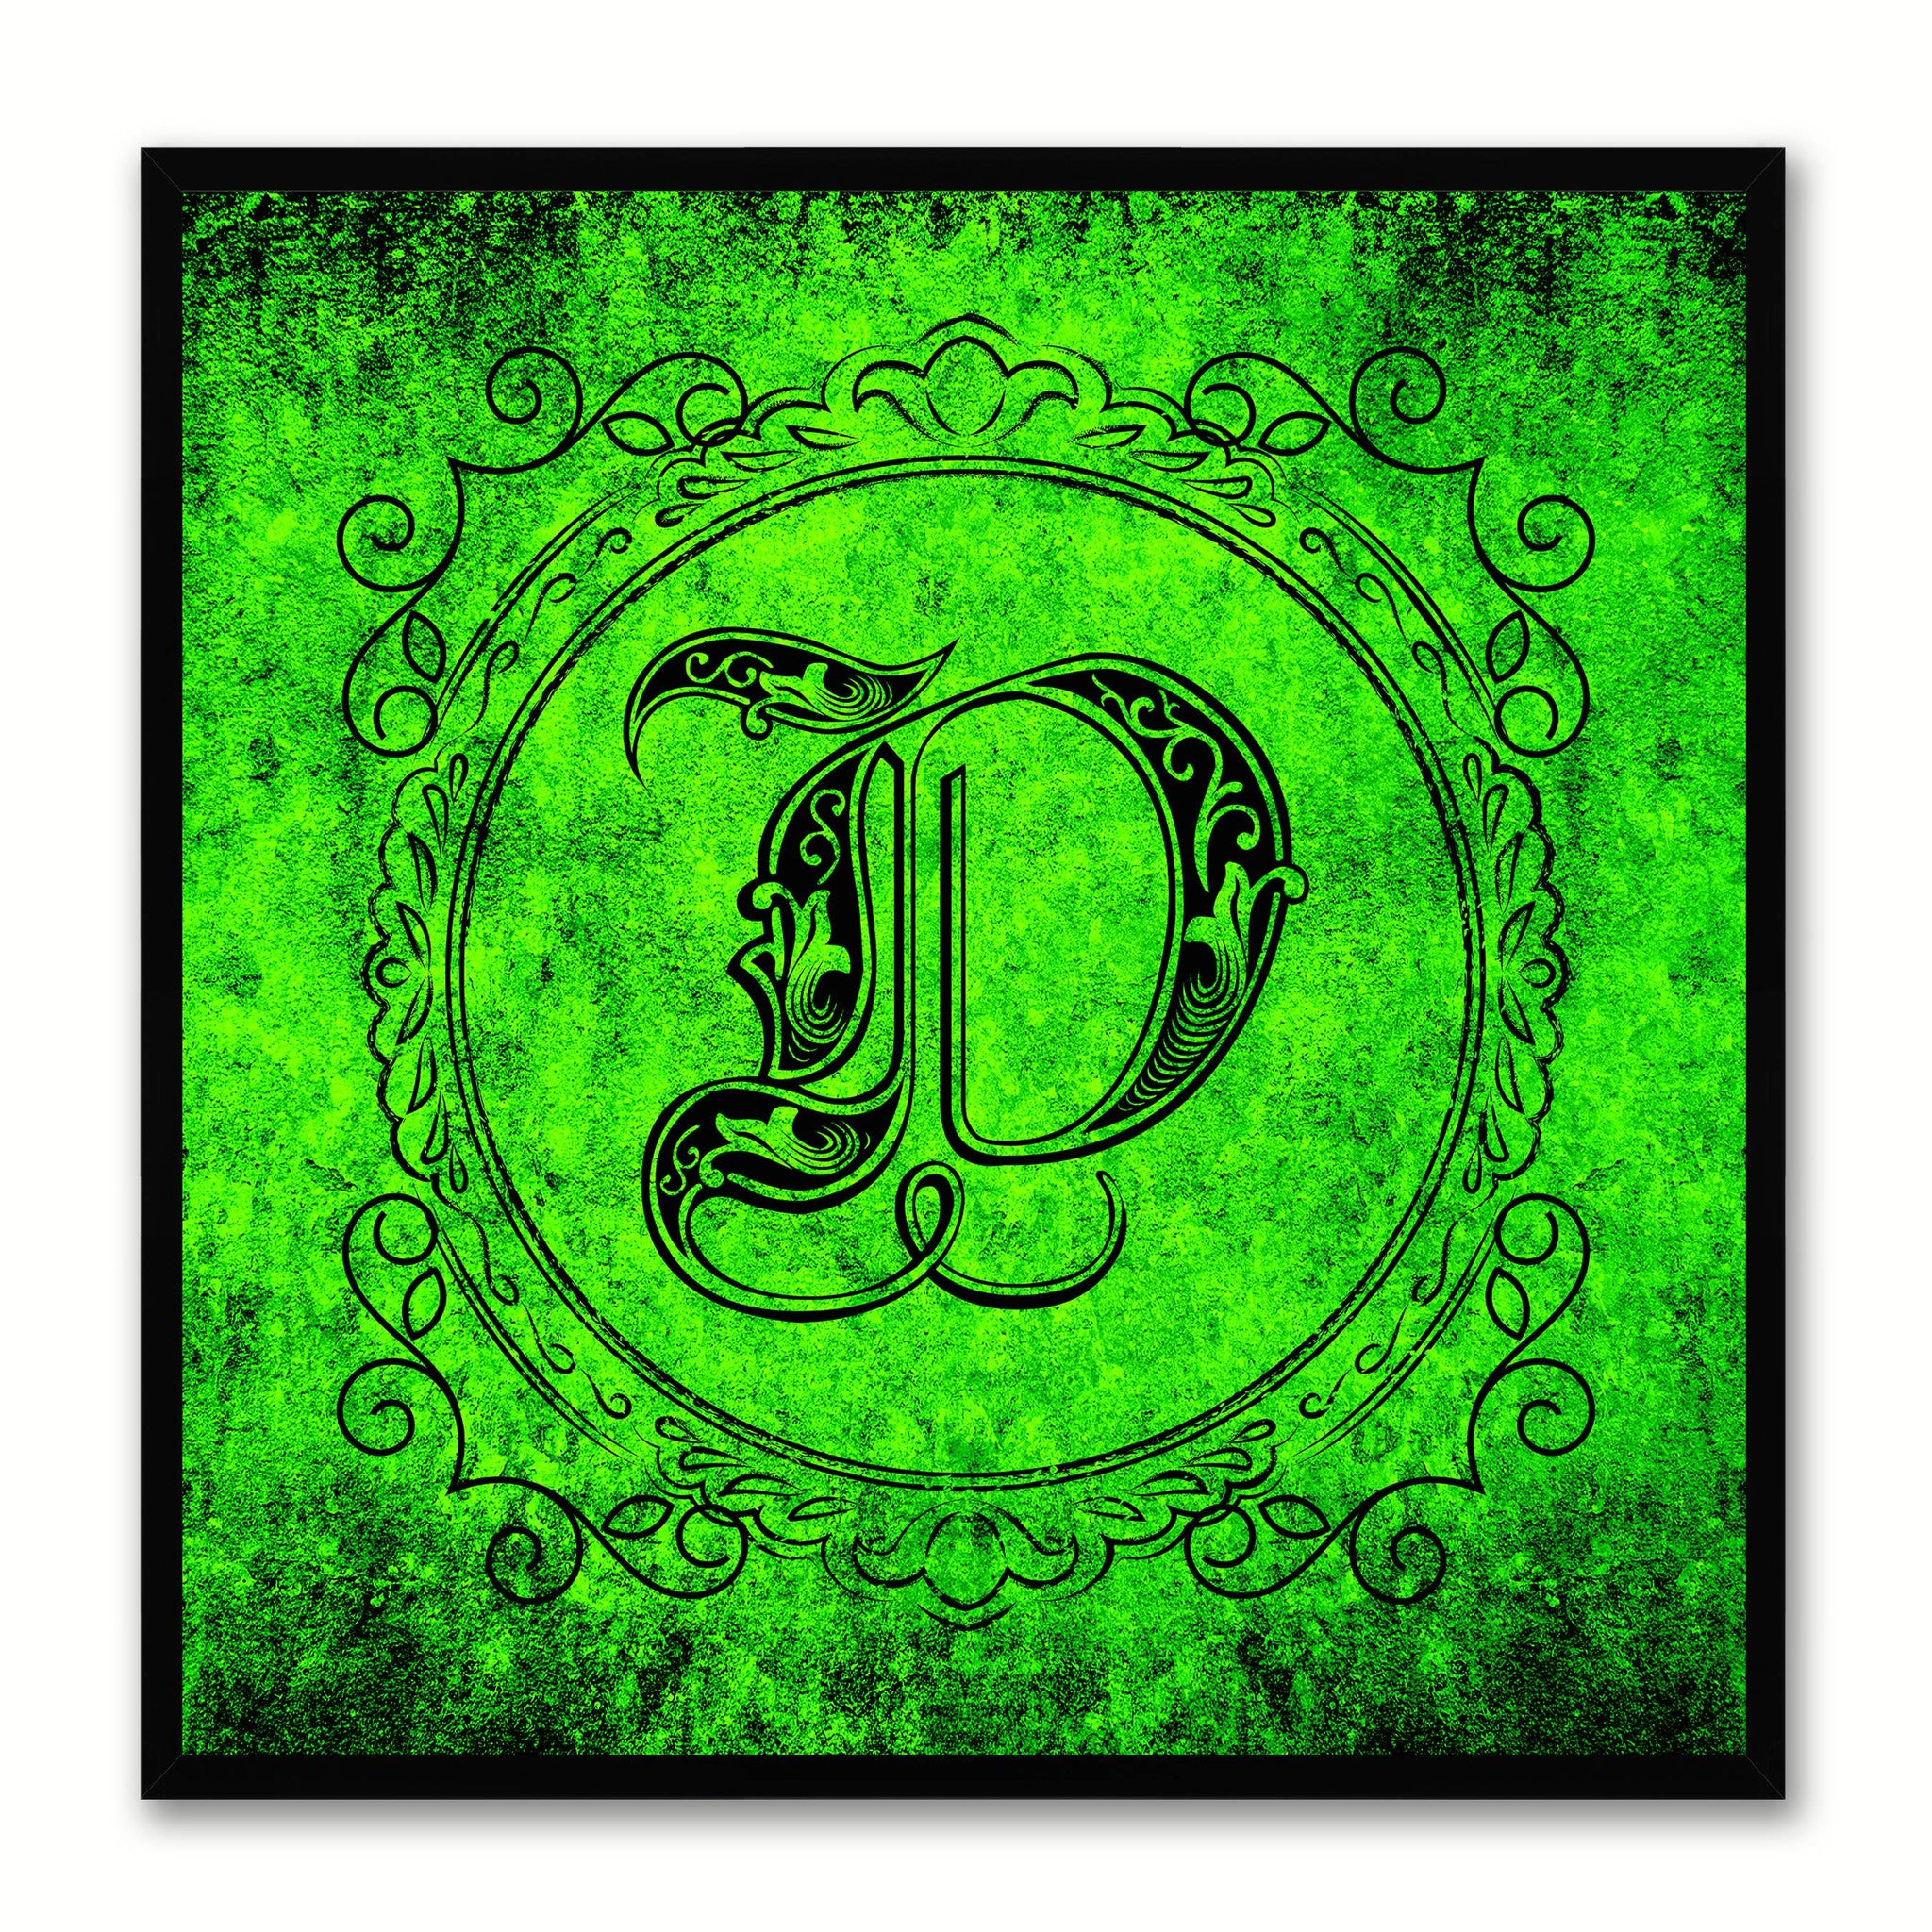 Alphabet D Green Canvas Print Black Frame Kids Bedroom Wall Décor Home Art